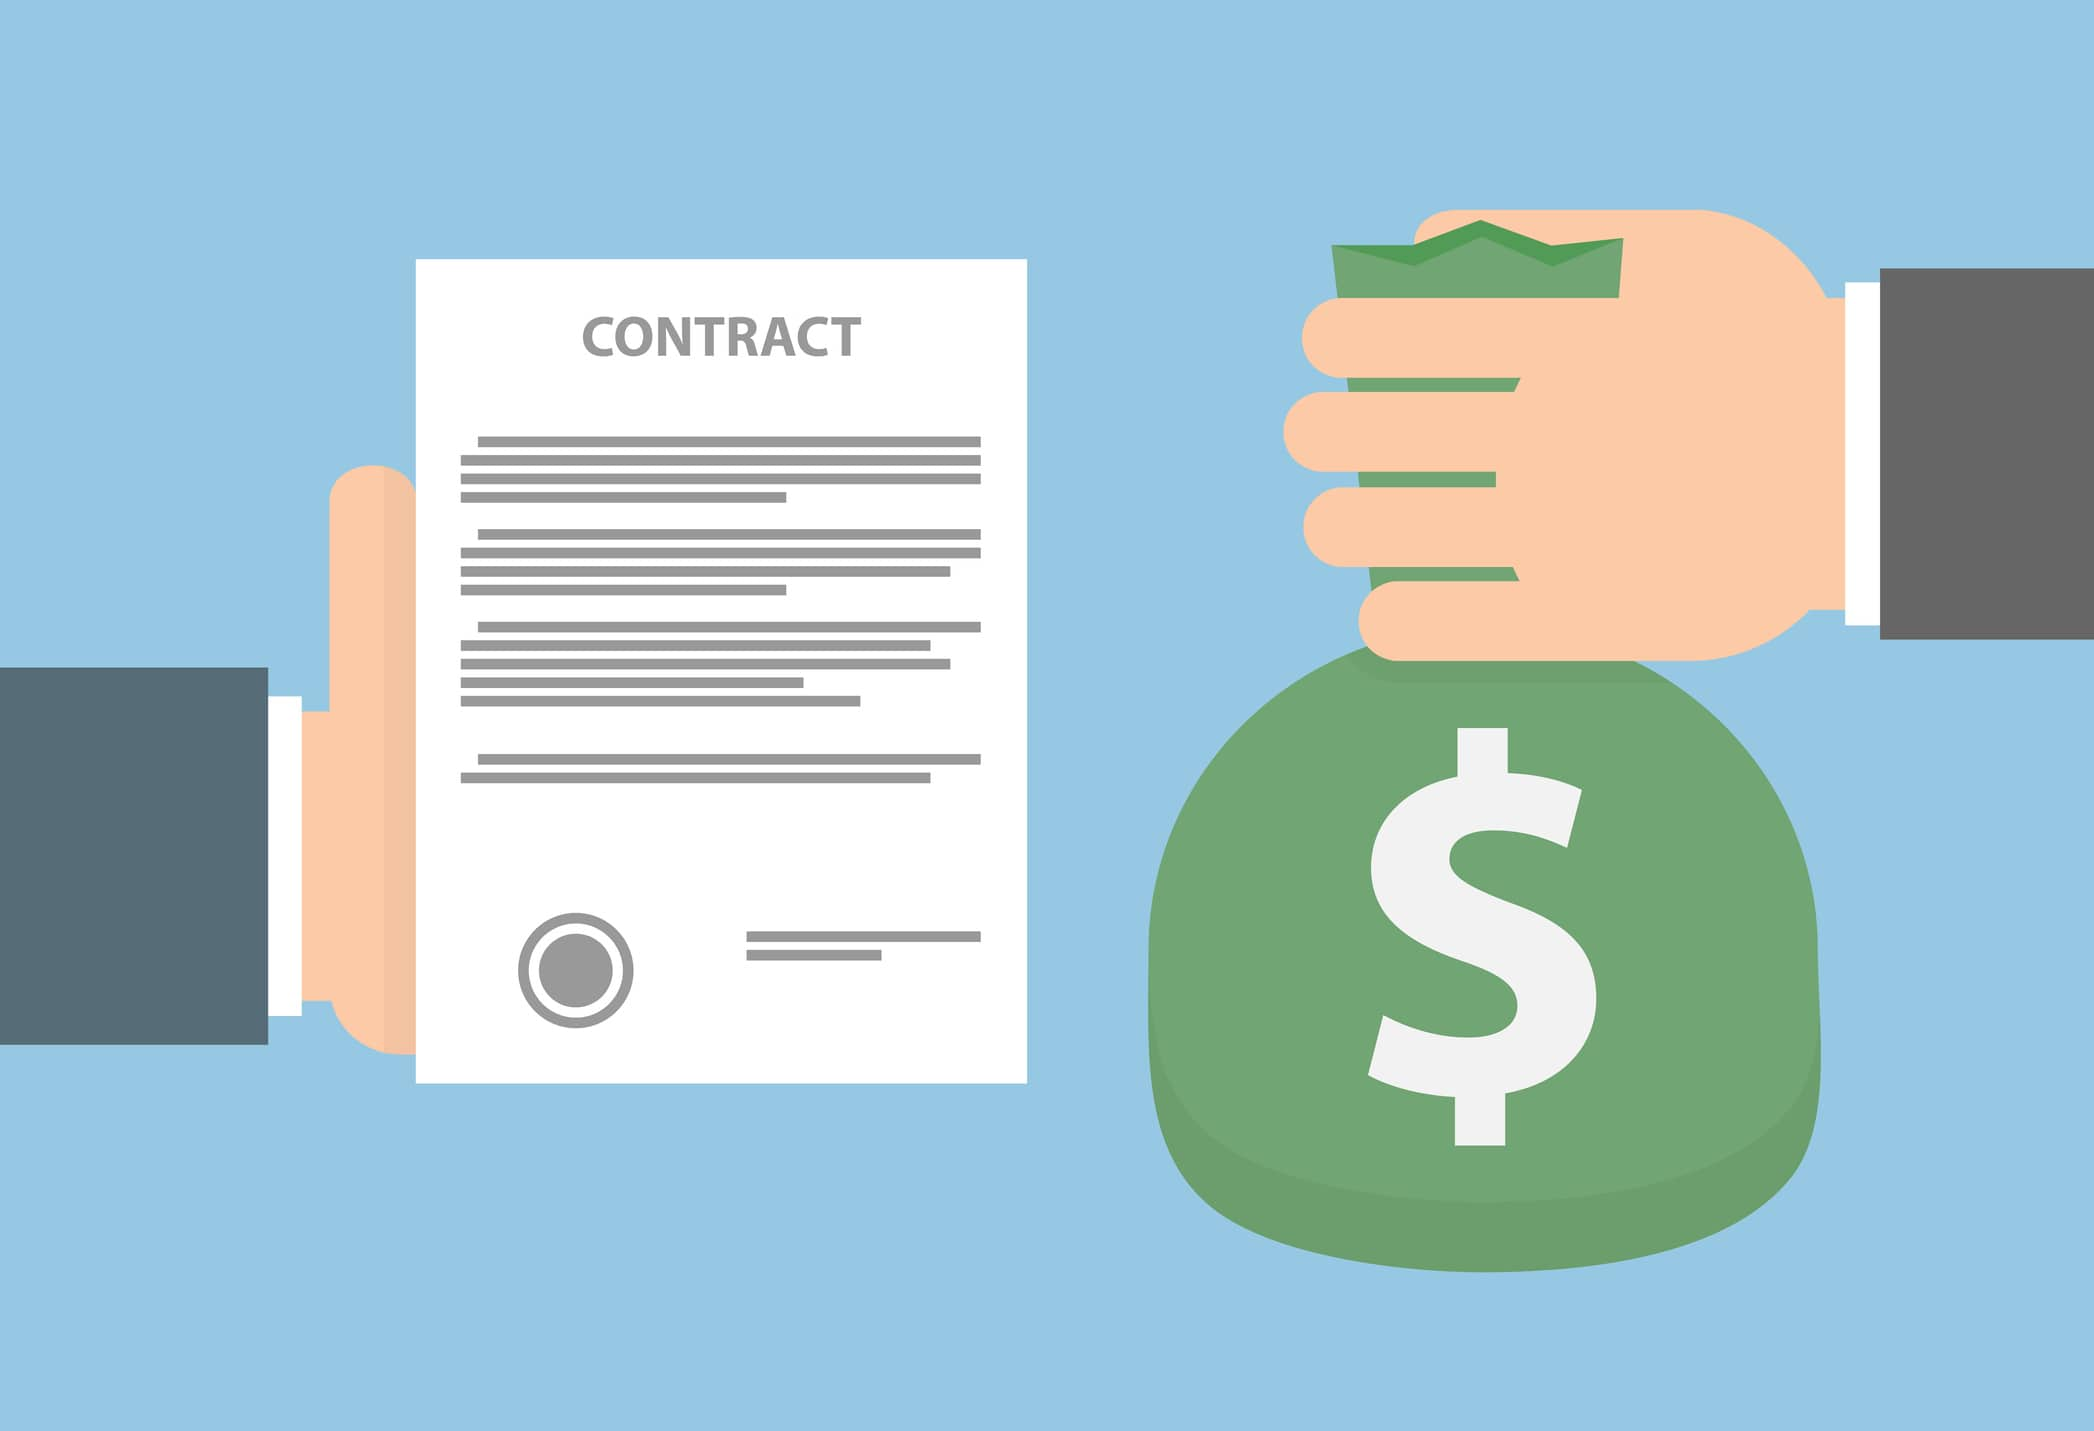 Image of a contract being exchanged for money